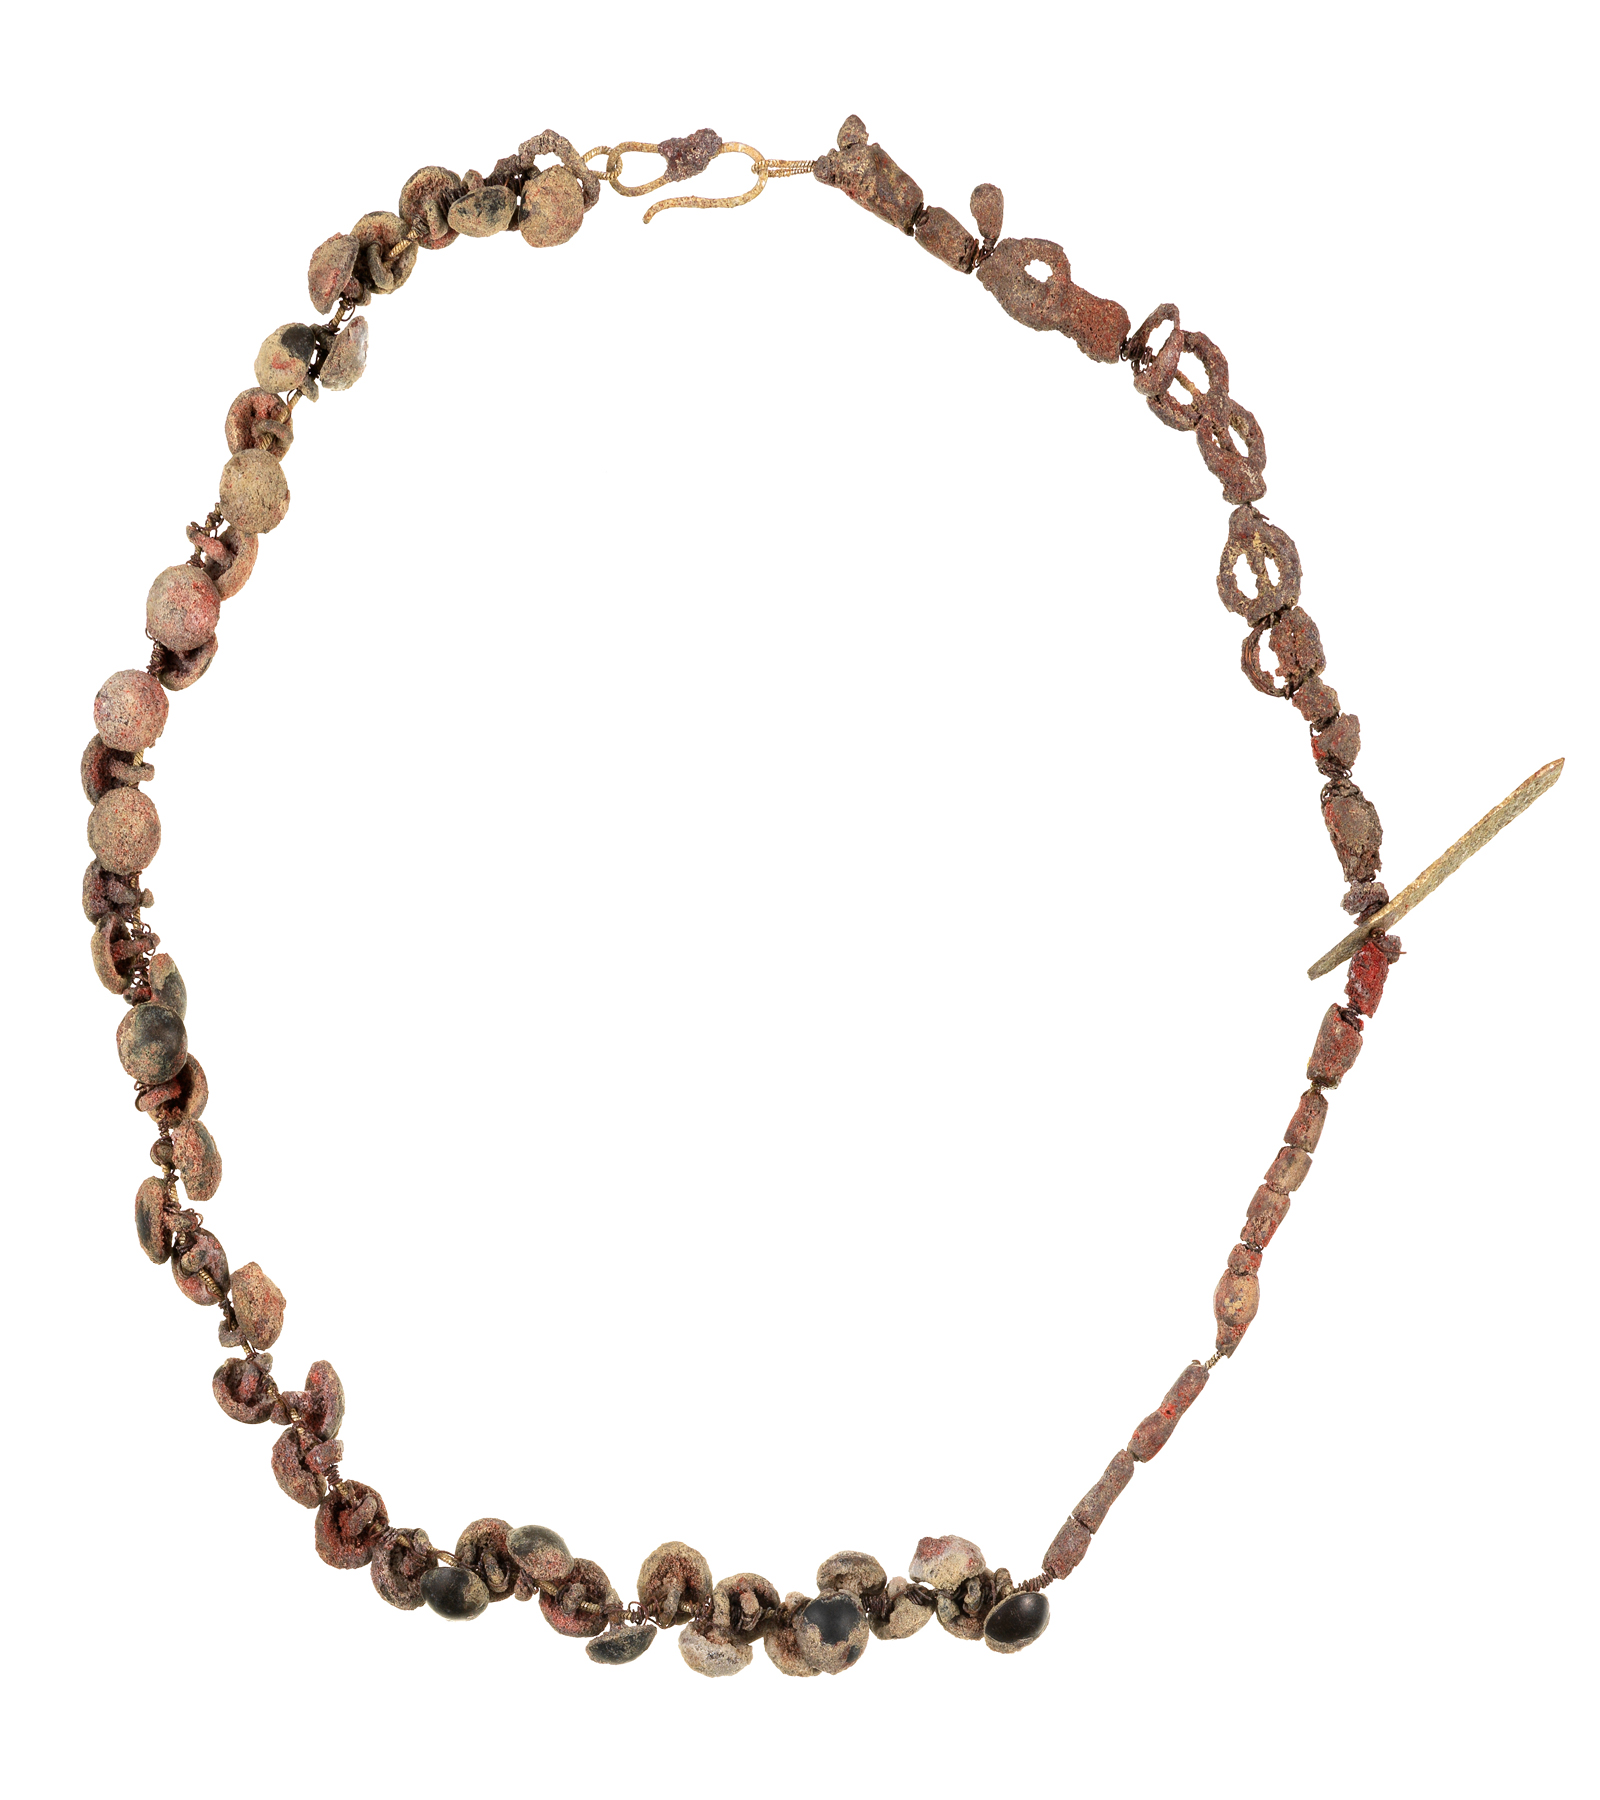 Unearthed Necklace 01, 2007